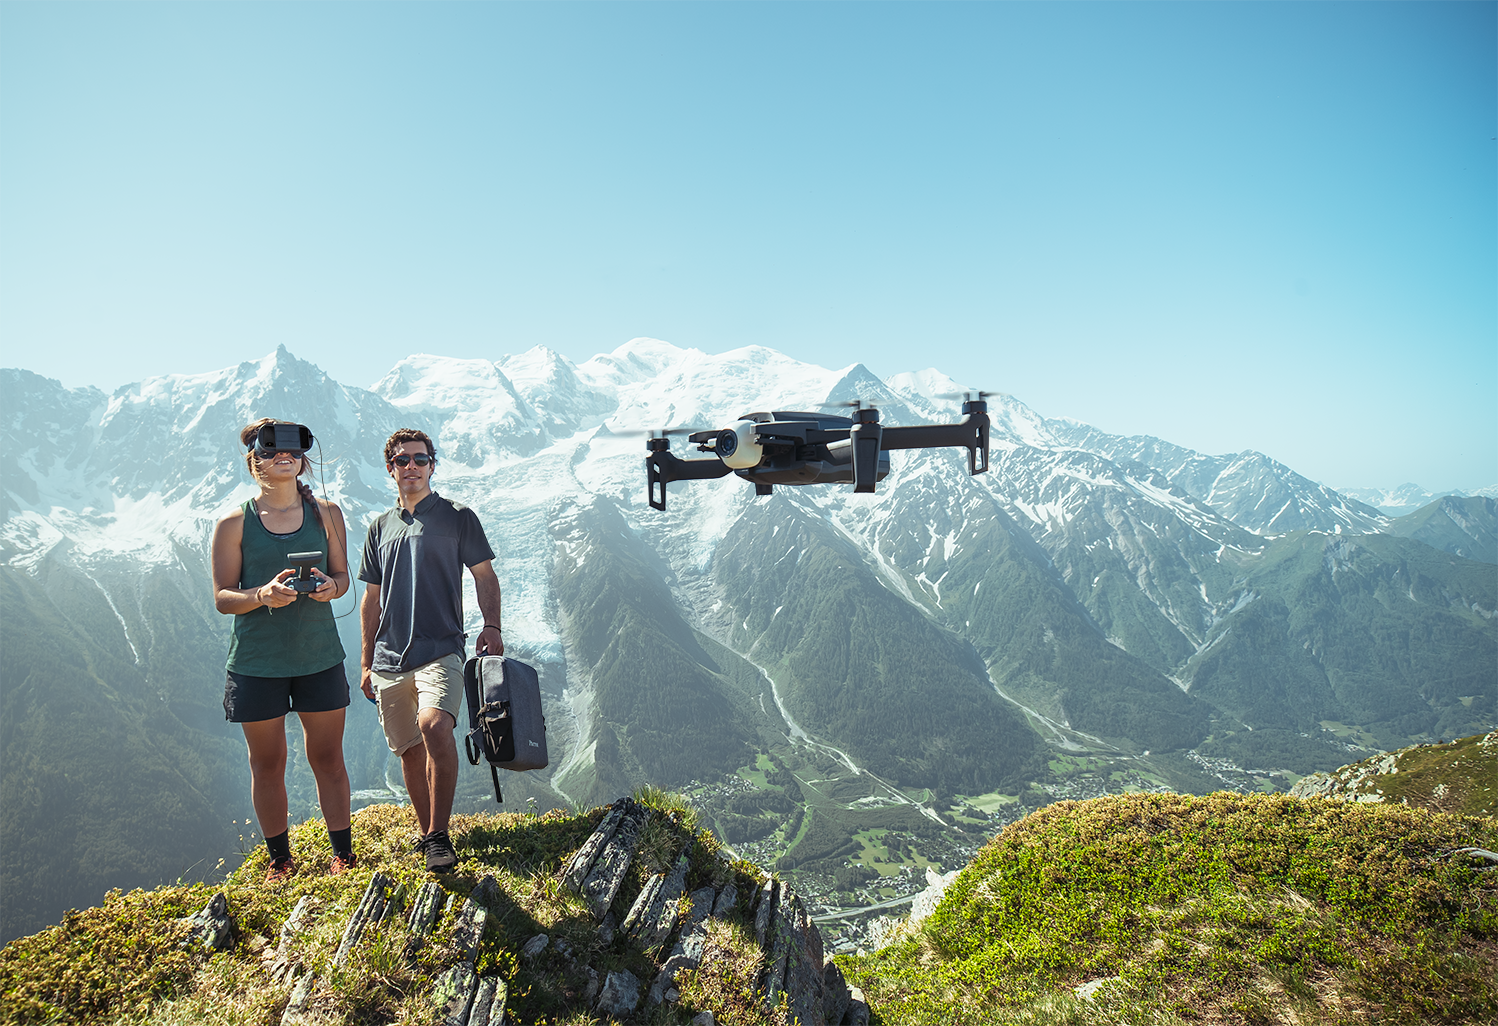 Parrot announces the ANAFI FPV drone with 4K HDR video and